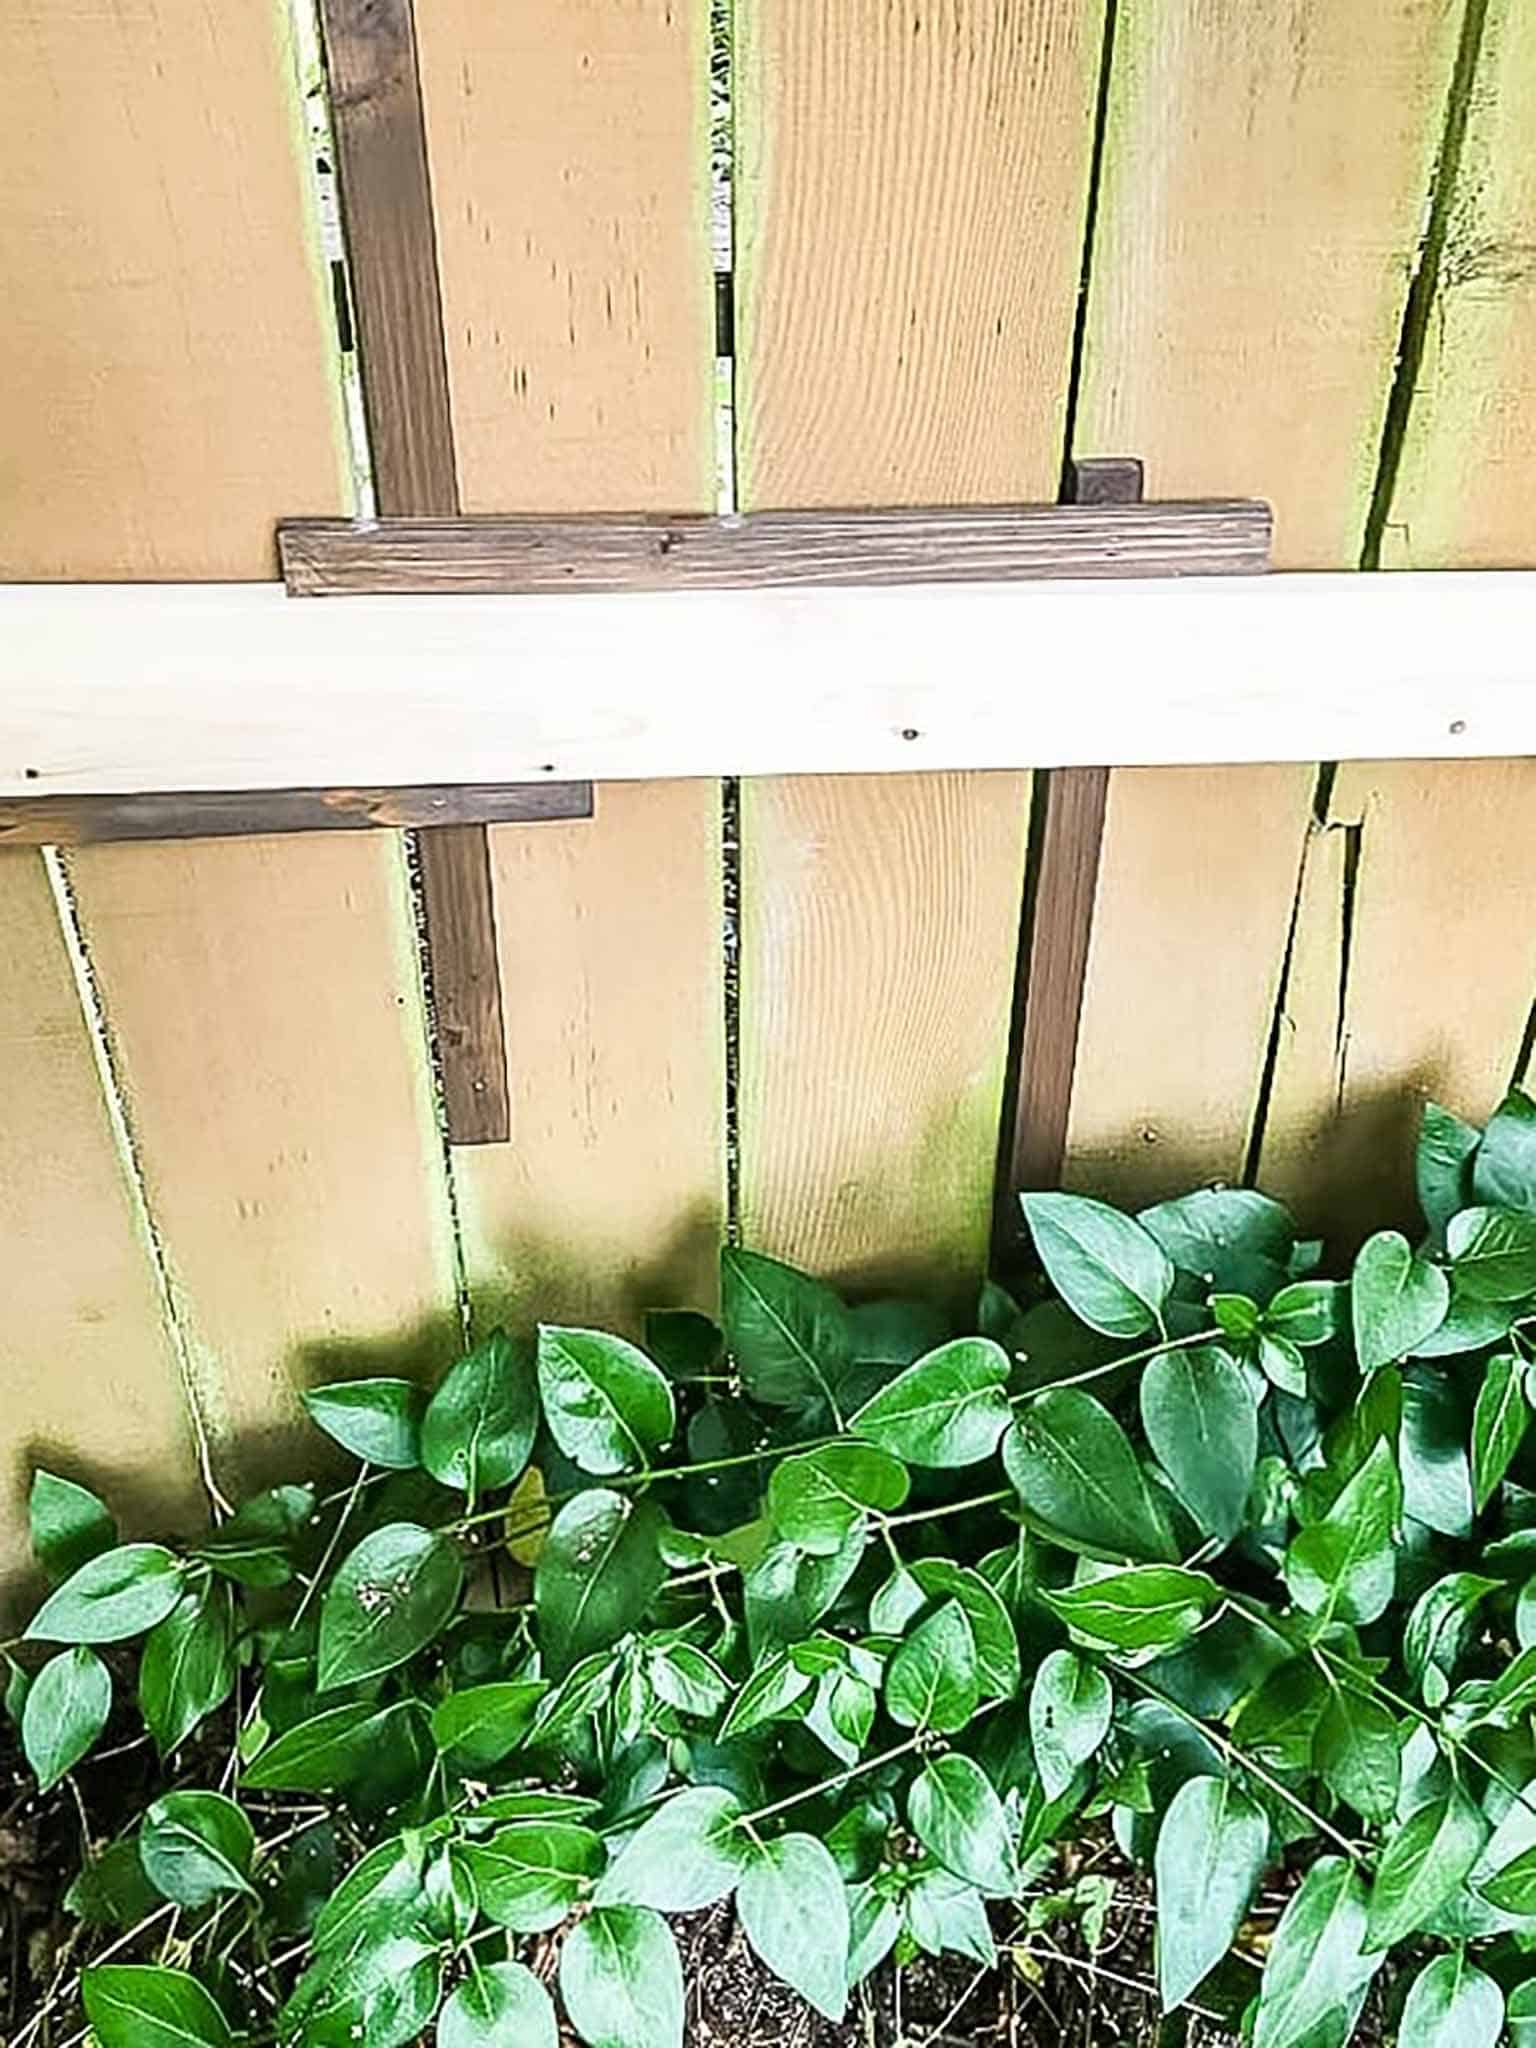 spacer used to space boards for clematis trellis